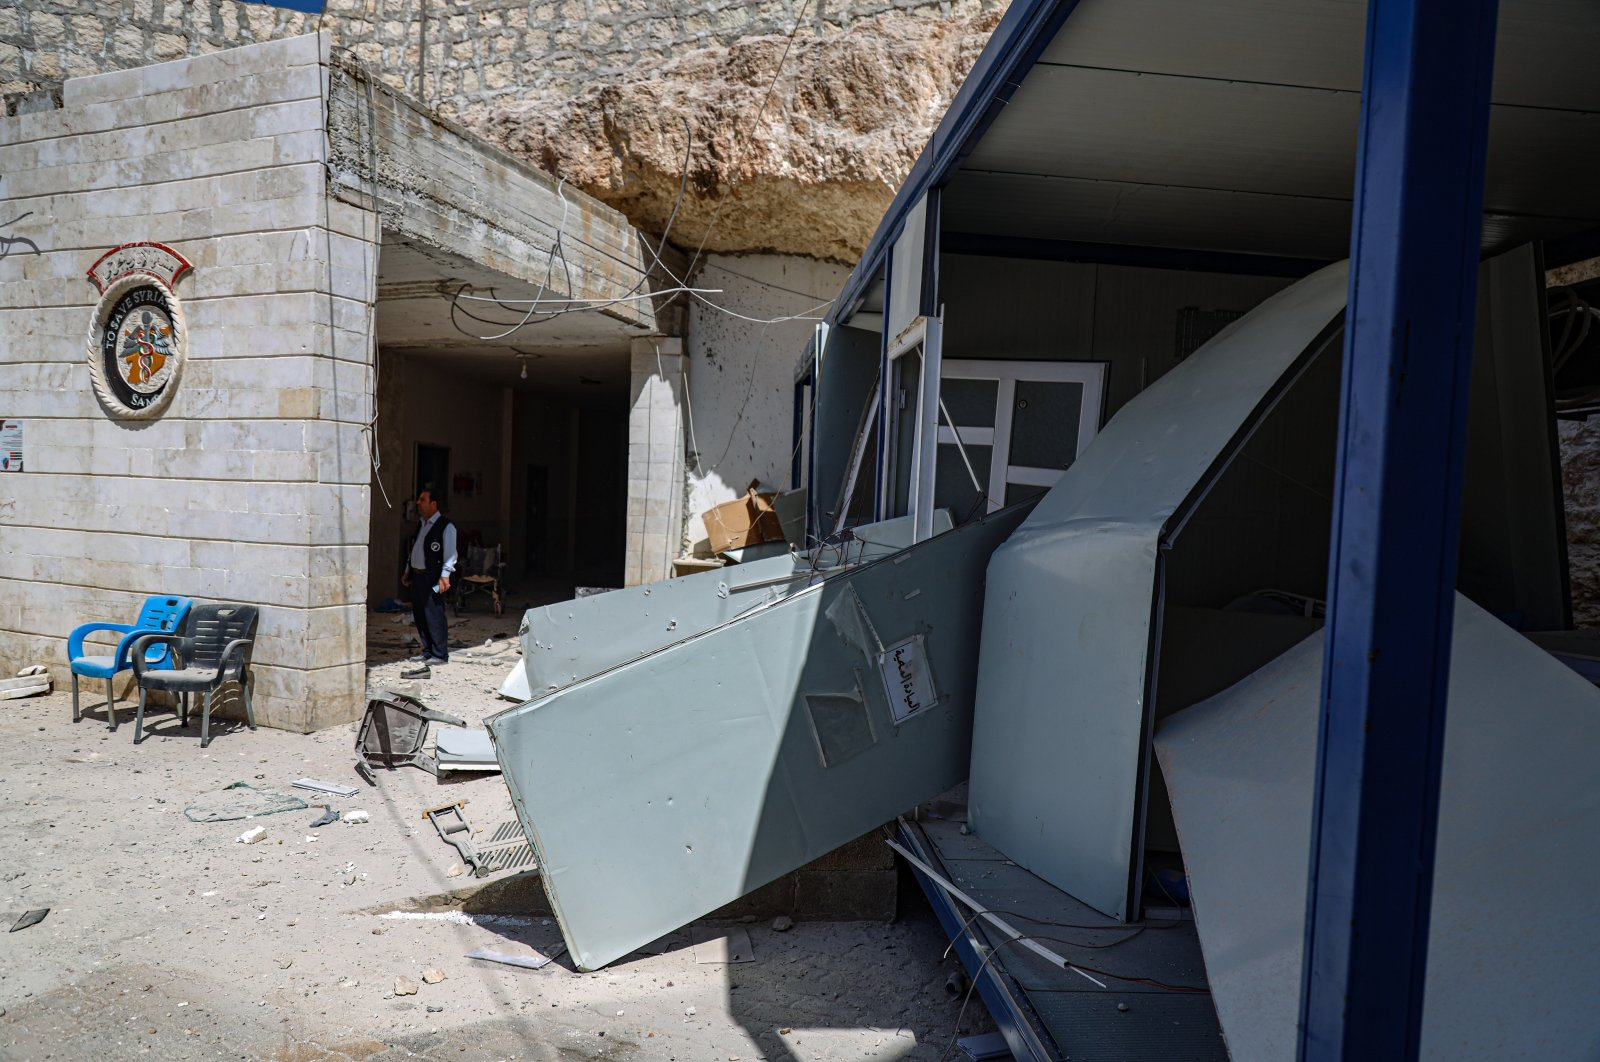 The destroyed main entrance to Atareb City Hospital following an artillery attack, Idlib, Syria, March 21, 2021. (Getty Images)